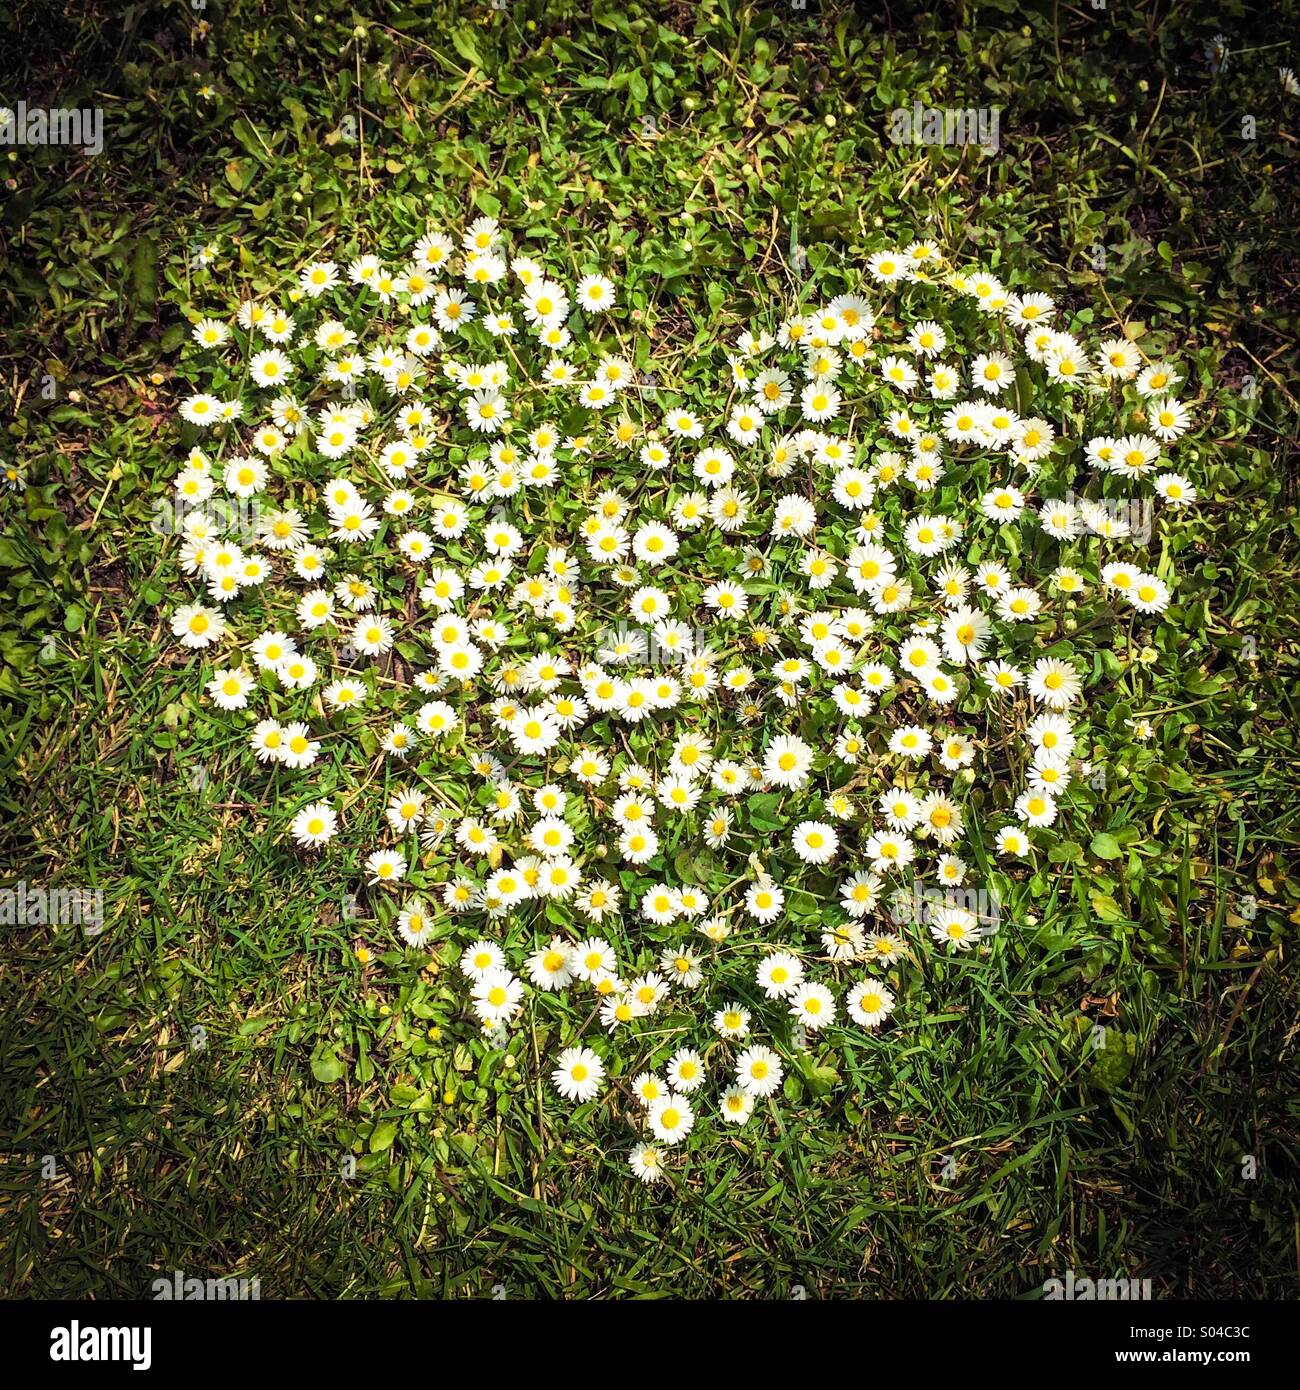 Heart made of daisies - Stock Image